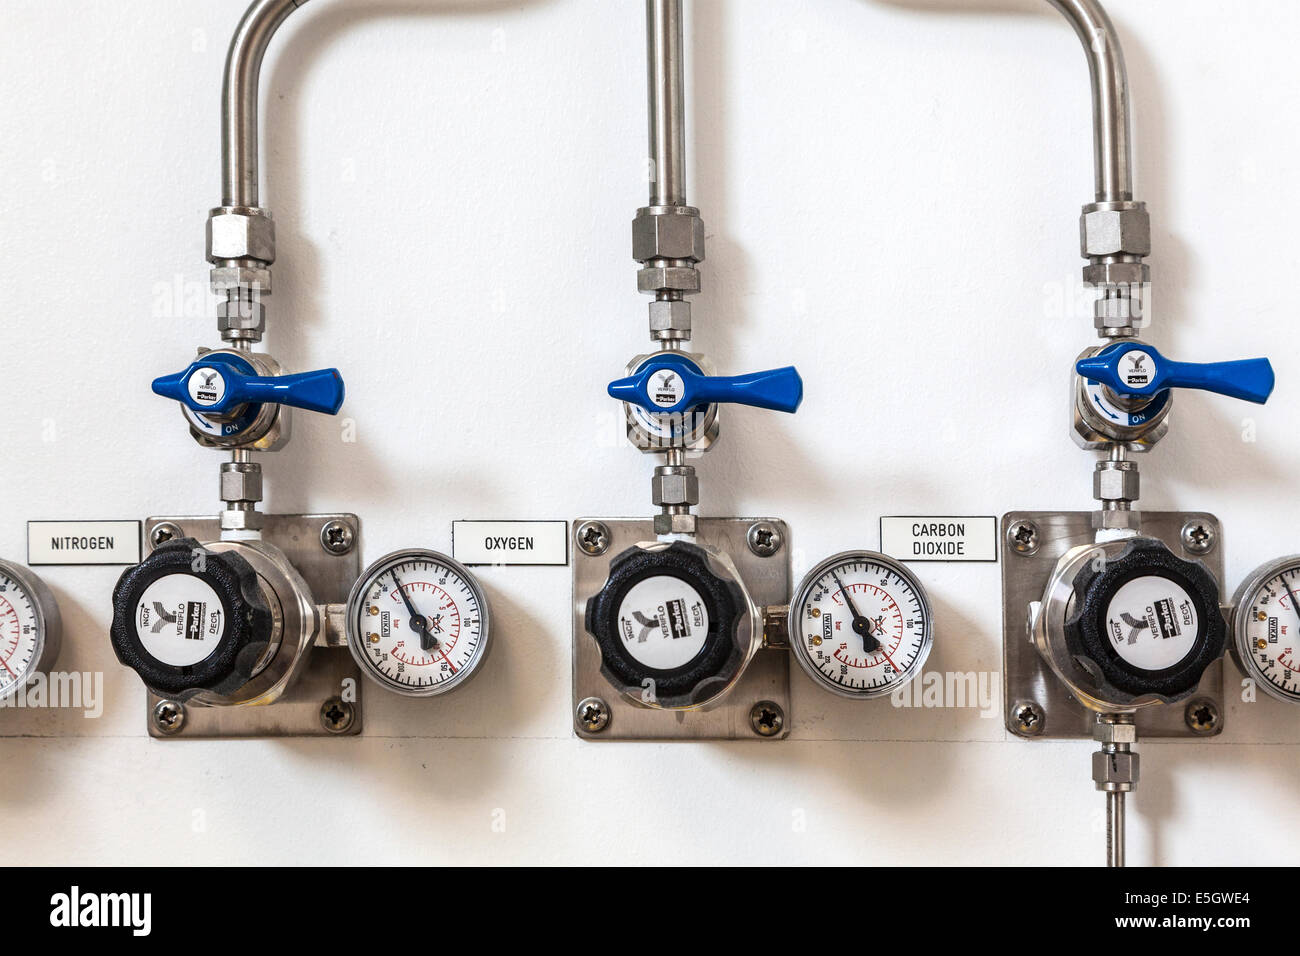 Pipes supplying a scientific research laboratory with the main gases found in our atmosphere. - Stock Image